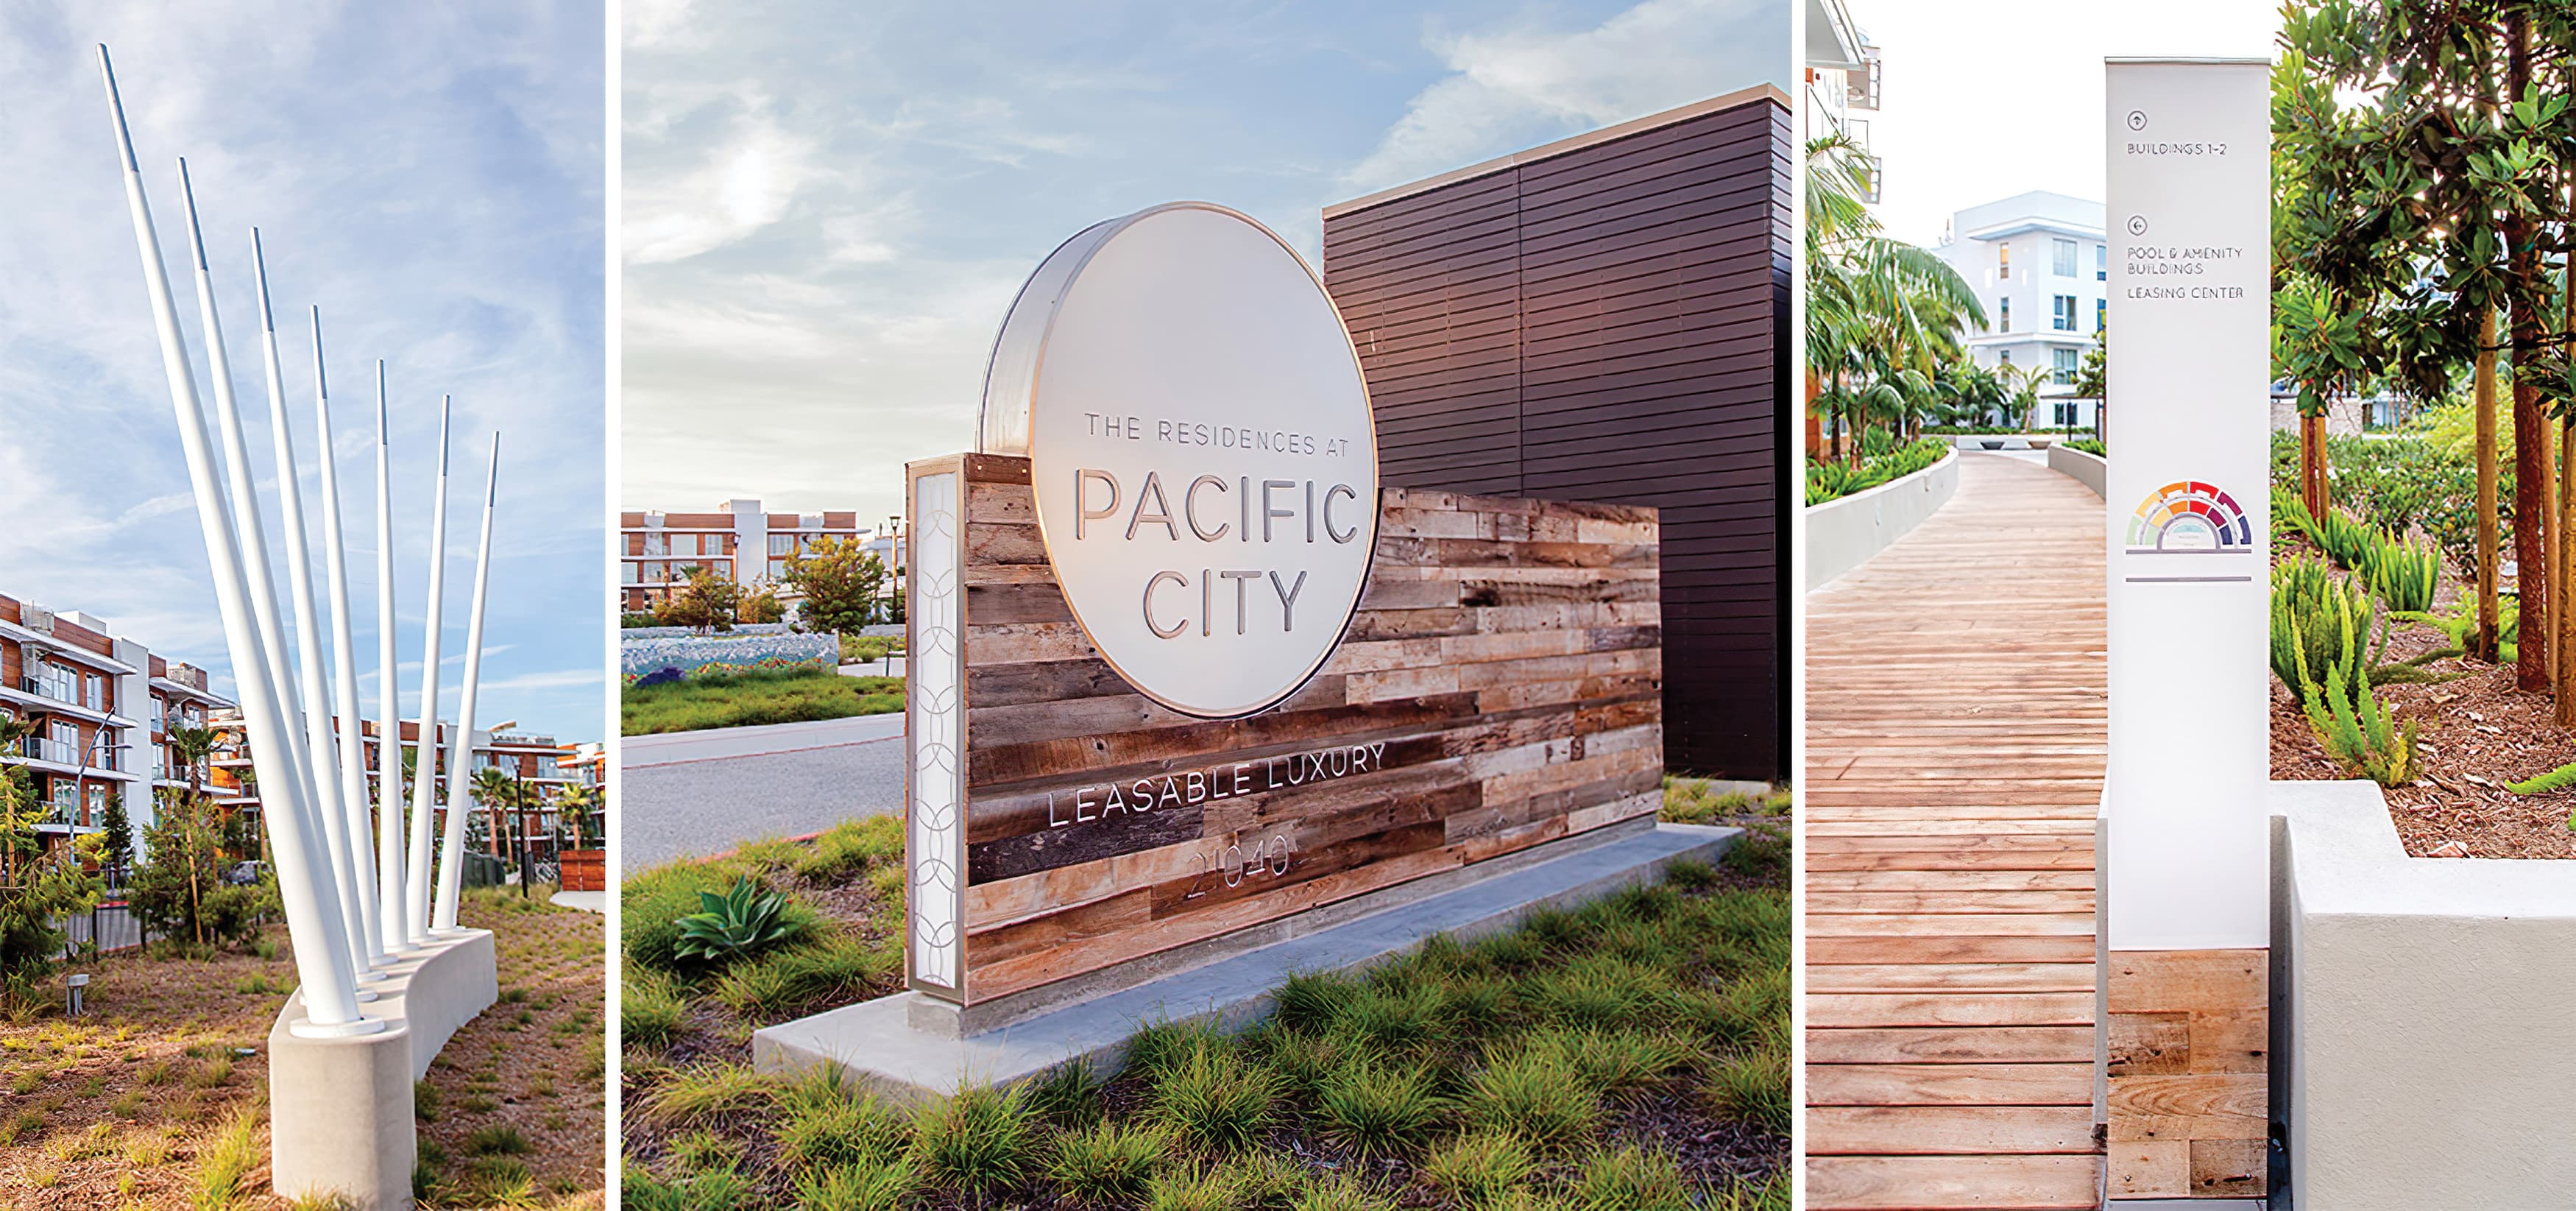 Pacific City, a luxury residential community in Huntington Beach, California. Project Identity Monument. Pedestrian Wayfinding Design. Public Art and Wayfinding.